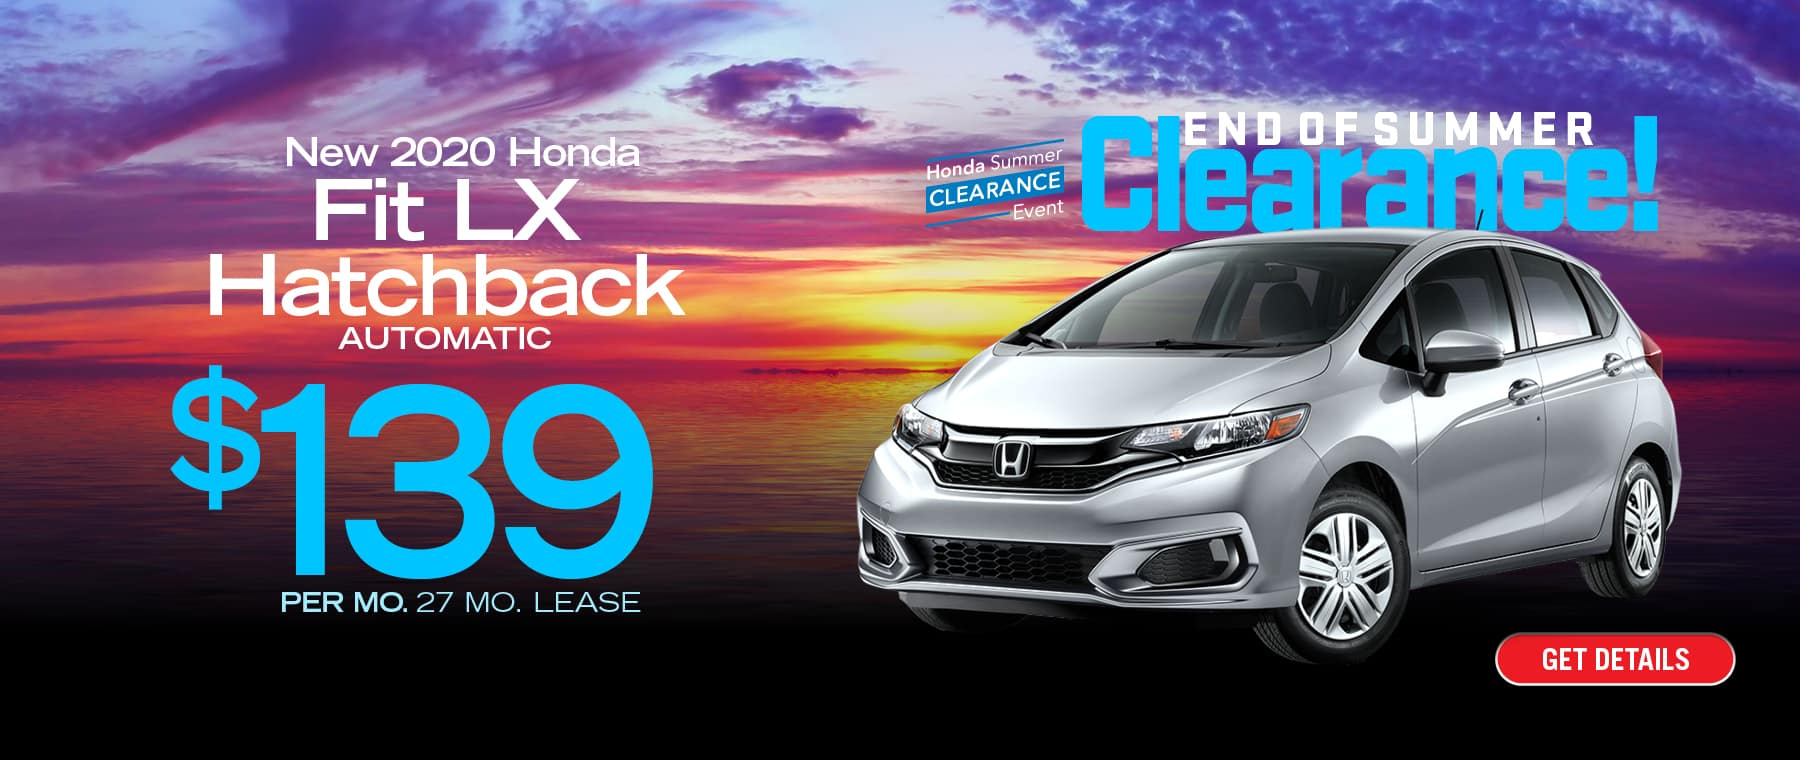 Lease a Honda Fit for $139